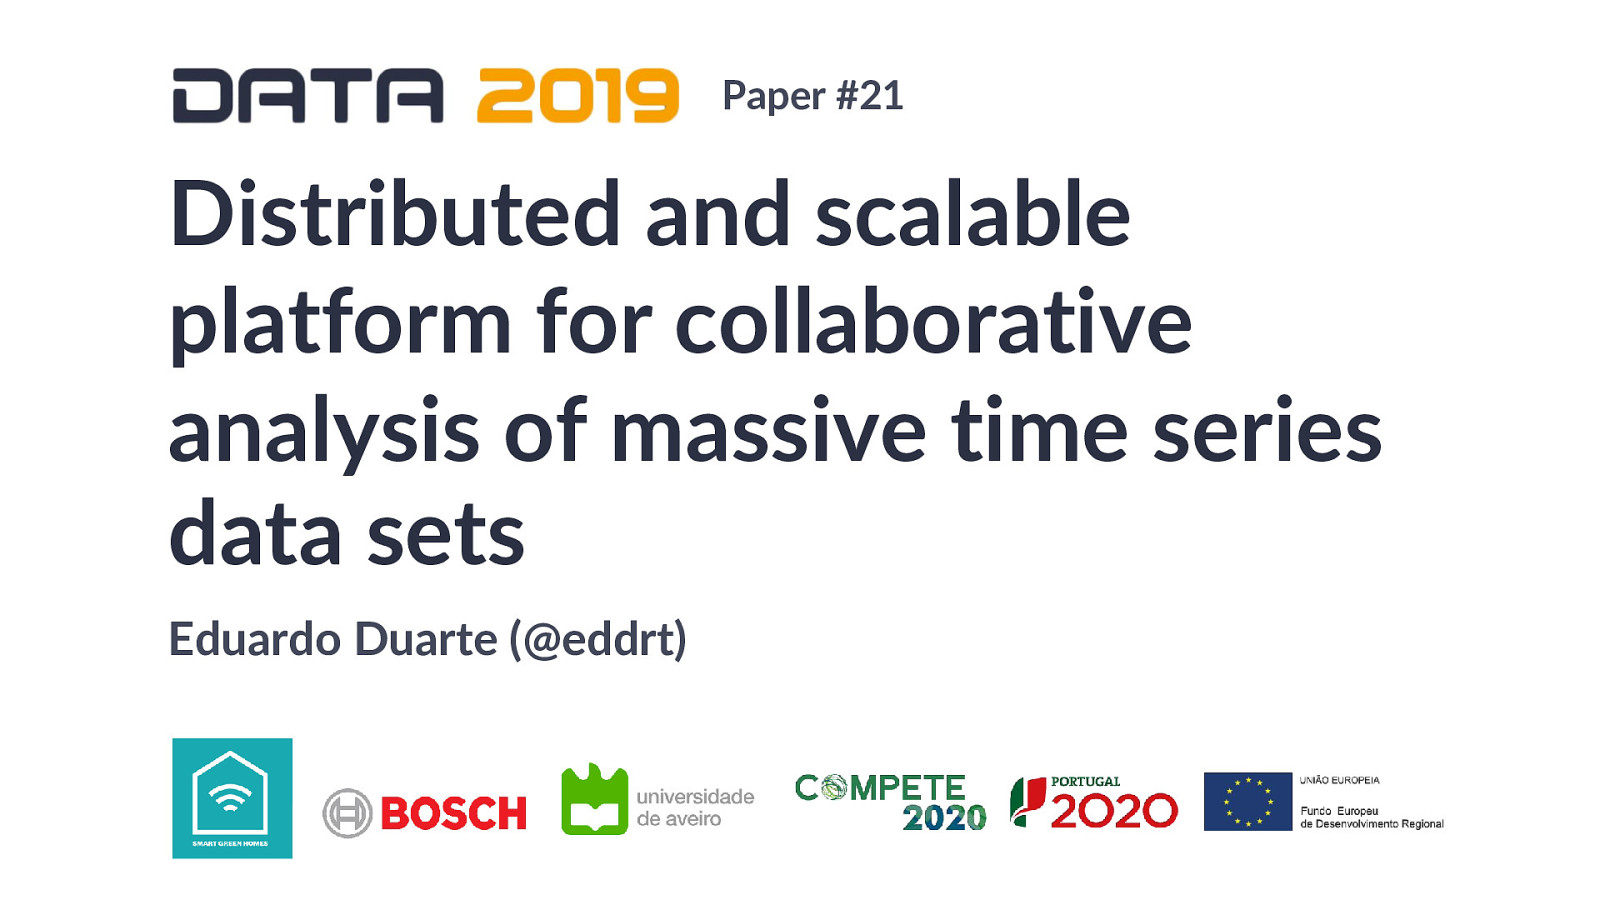 Distributed and scalable platform for collaborative analysis of massive time series data sets